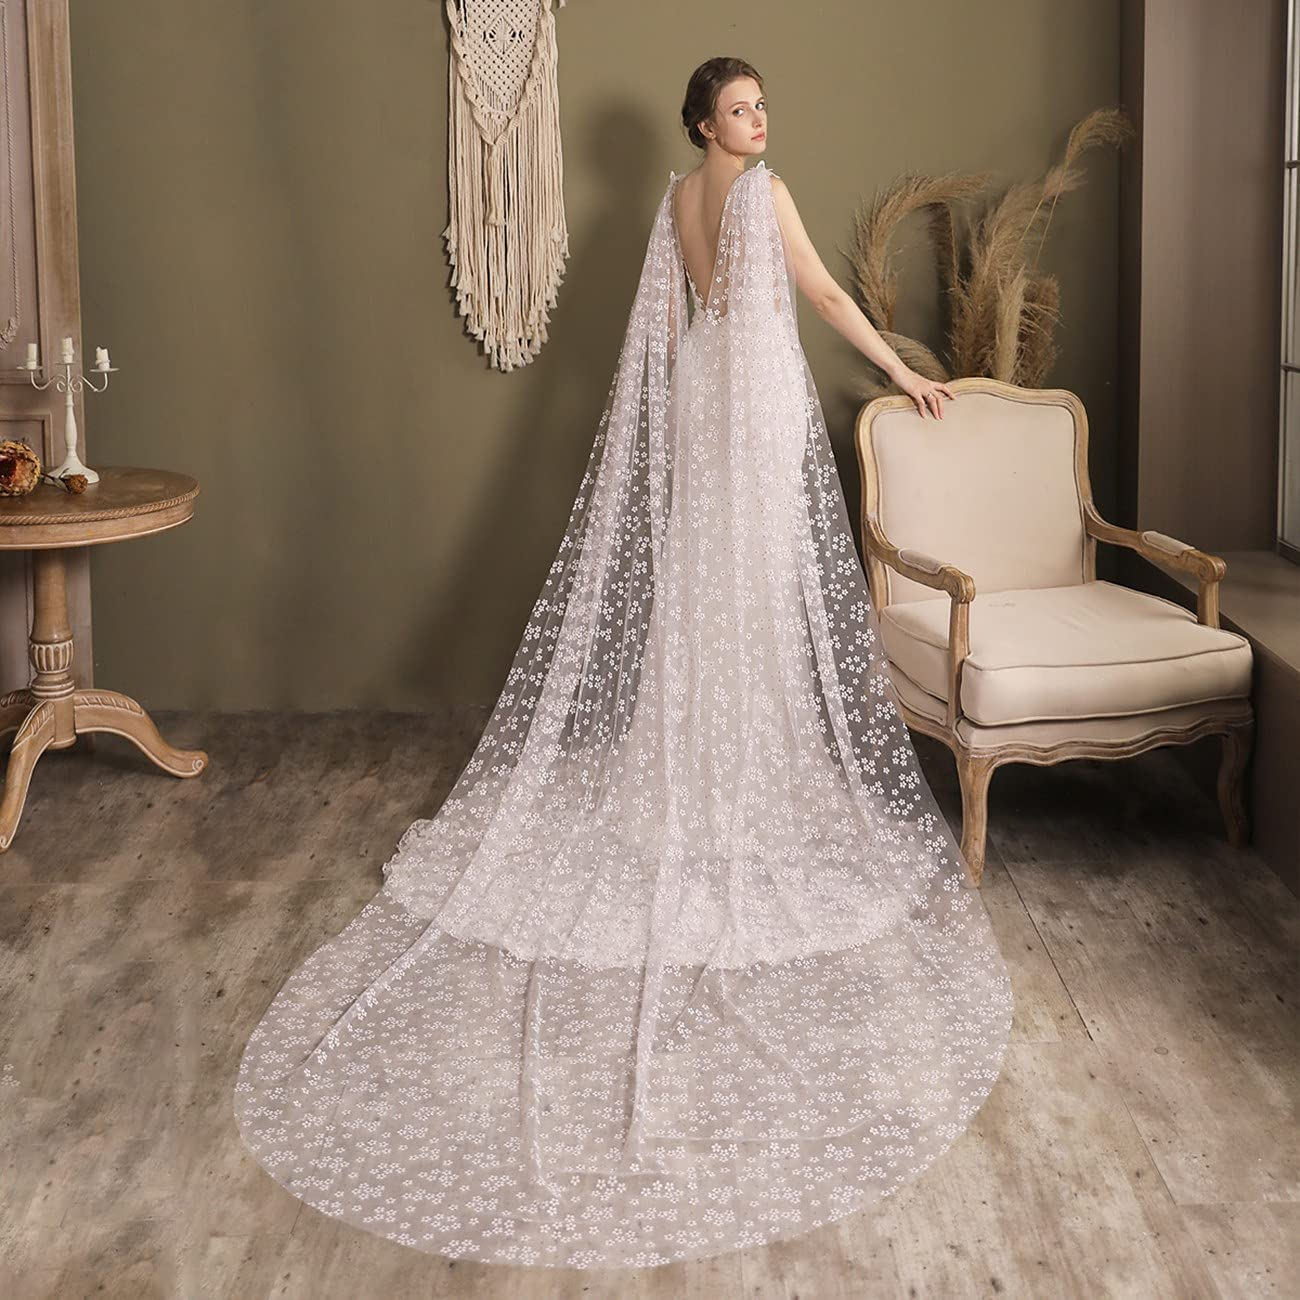 JZJZ Bride Wedding Veil Cathedral Inexpensive 1 35% OFF Tier Bridal Tulle with Long